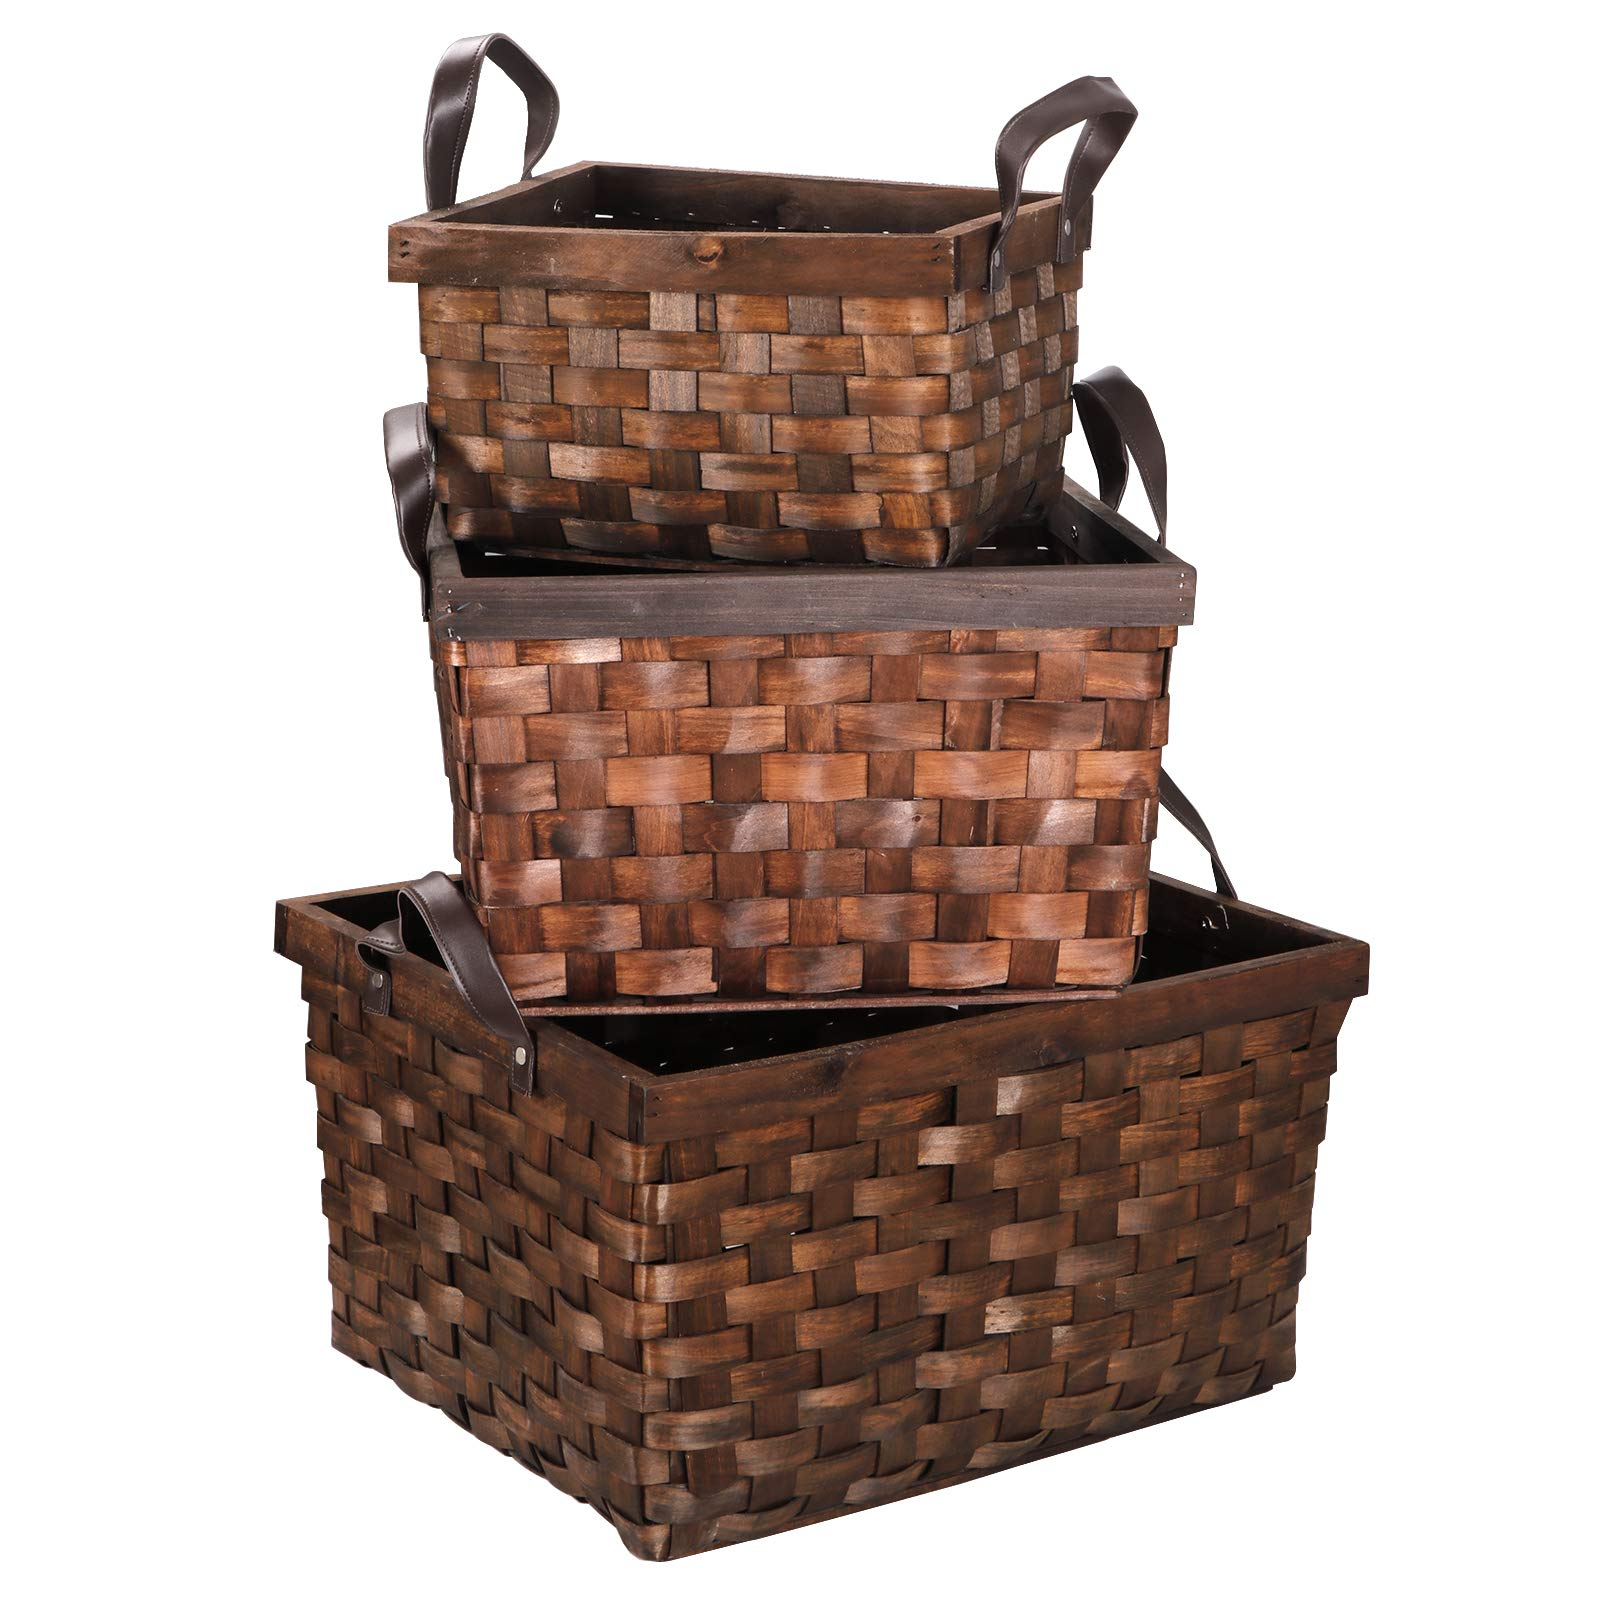 F2C Set of 3 Wooden Wicker Rattan Woven Storage Box Basket Container Tote Organizer Bin Laundry Hamper W/Leather Handles Portable Toy Chest Storage Baskets Nursery Bins Home Decor